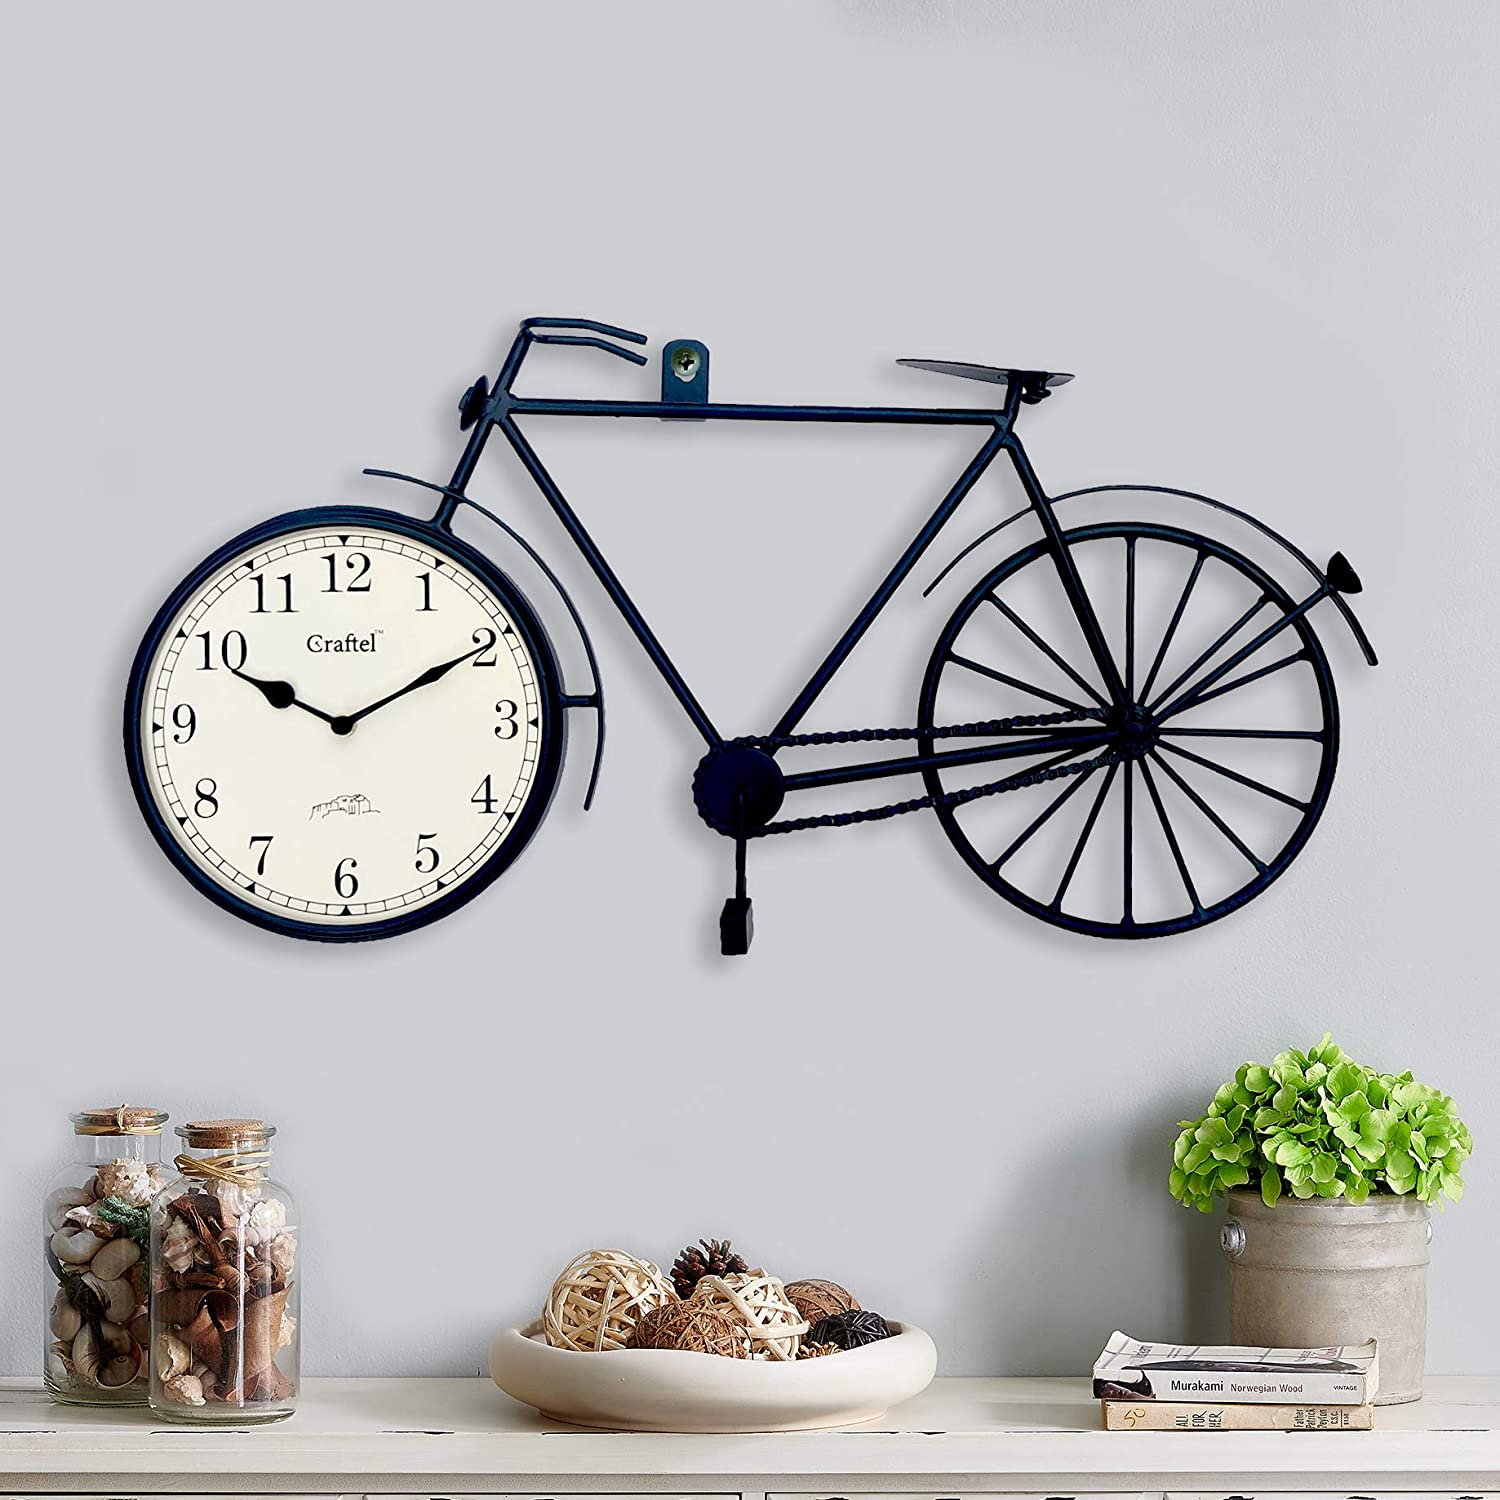 "12.)Craftel, Handmade Cycle Shaped Powder Coated Iron Metal Wall Clock (24"" x 12"")"